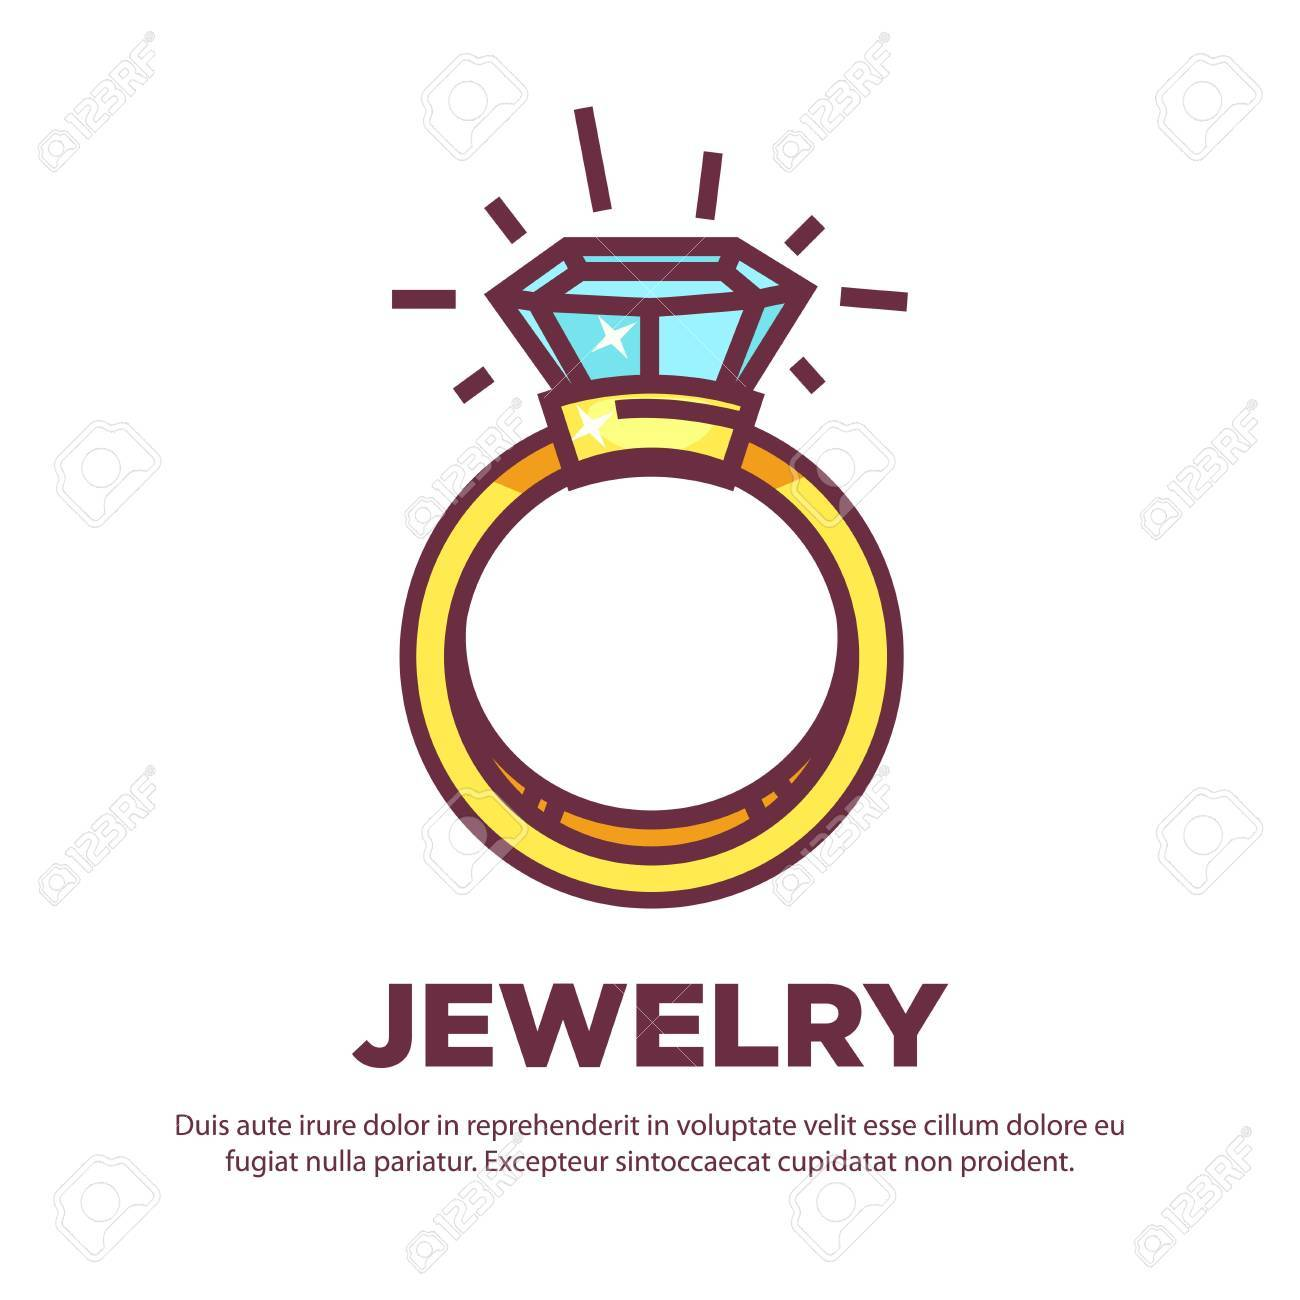 jewelry golden diamond wedding ring vector flat icon design royalty